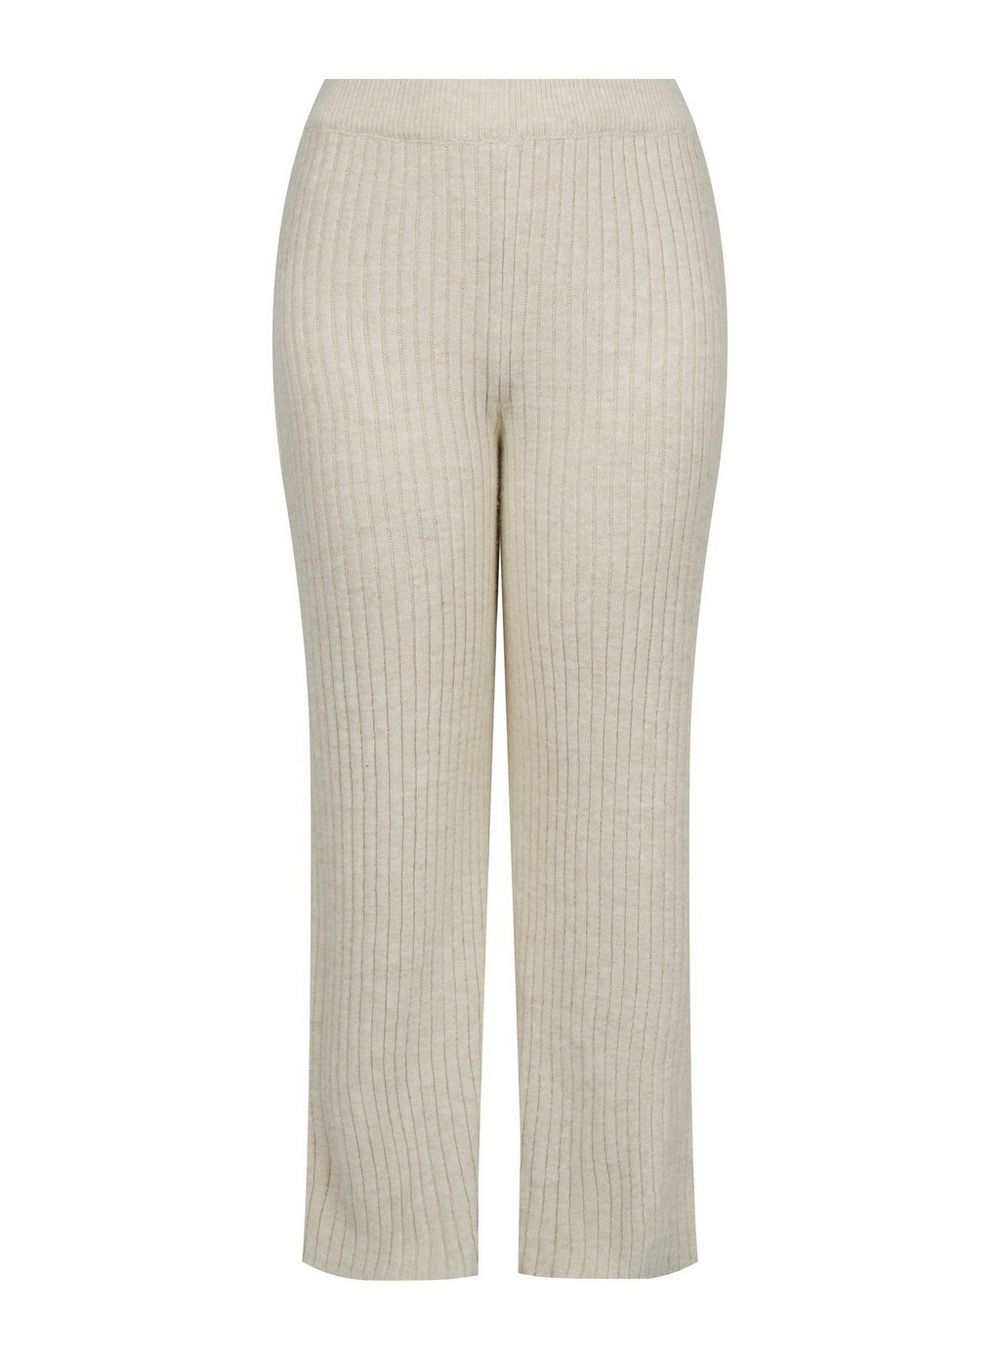 Dorothy Perkins Womens Curve Beige Knitted Wide Leg Trousers Sweatpants Bottoms